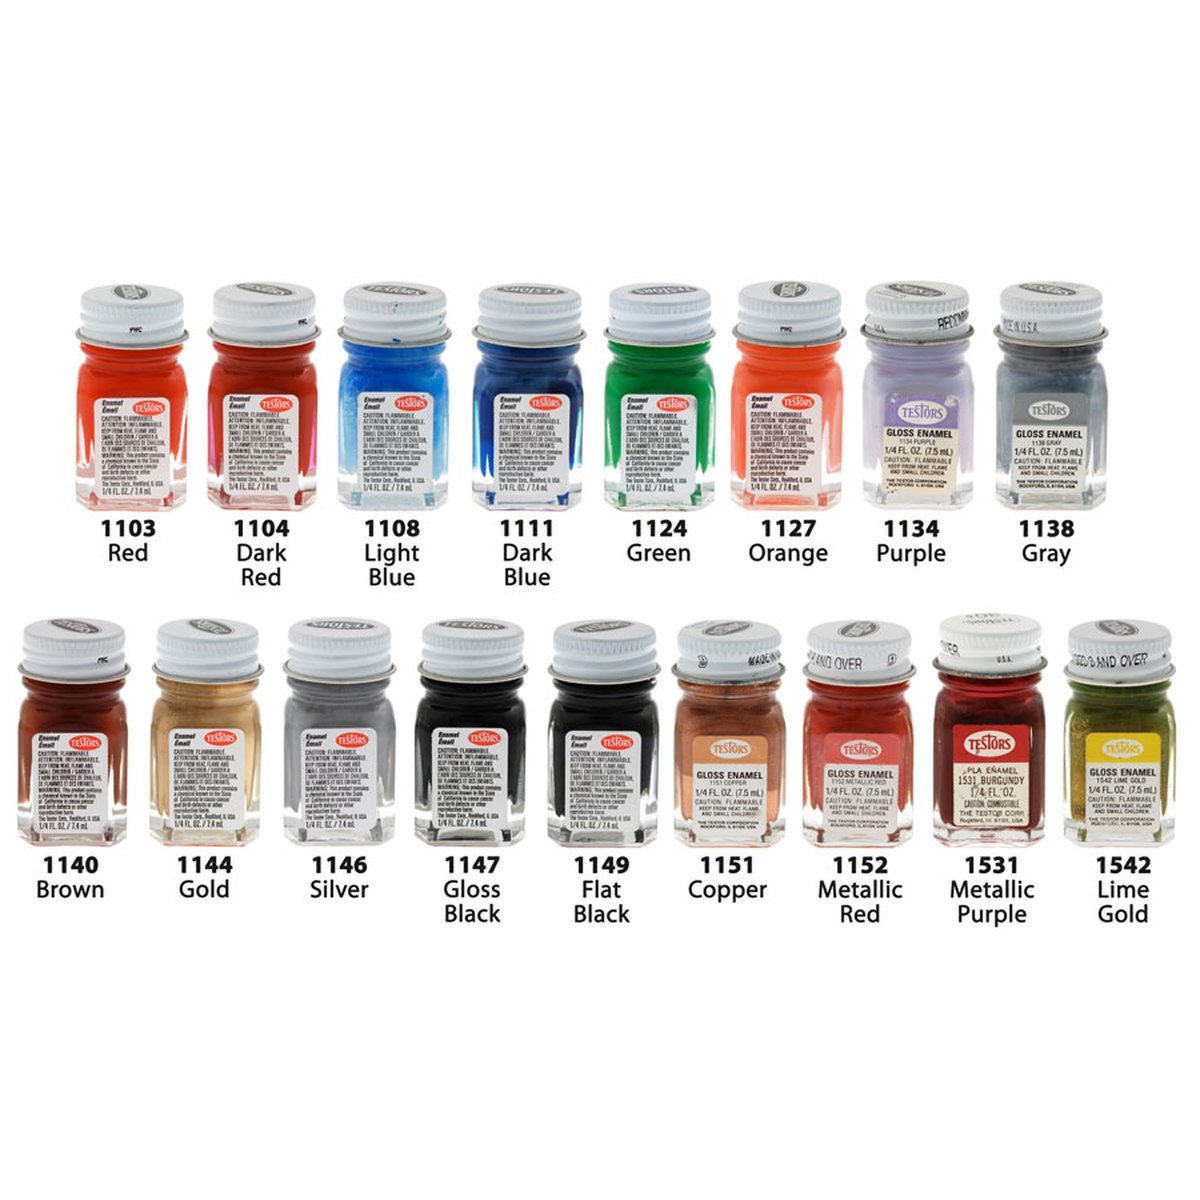 Two rows of Testors paint jars in many colors